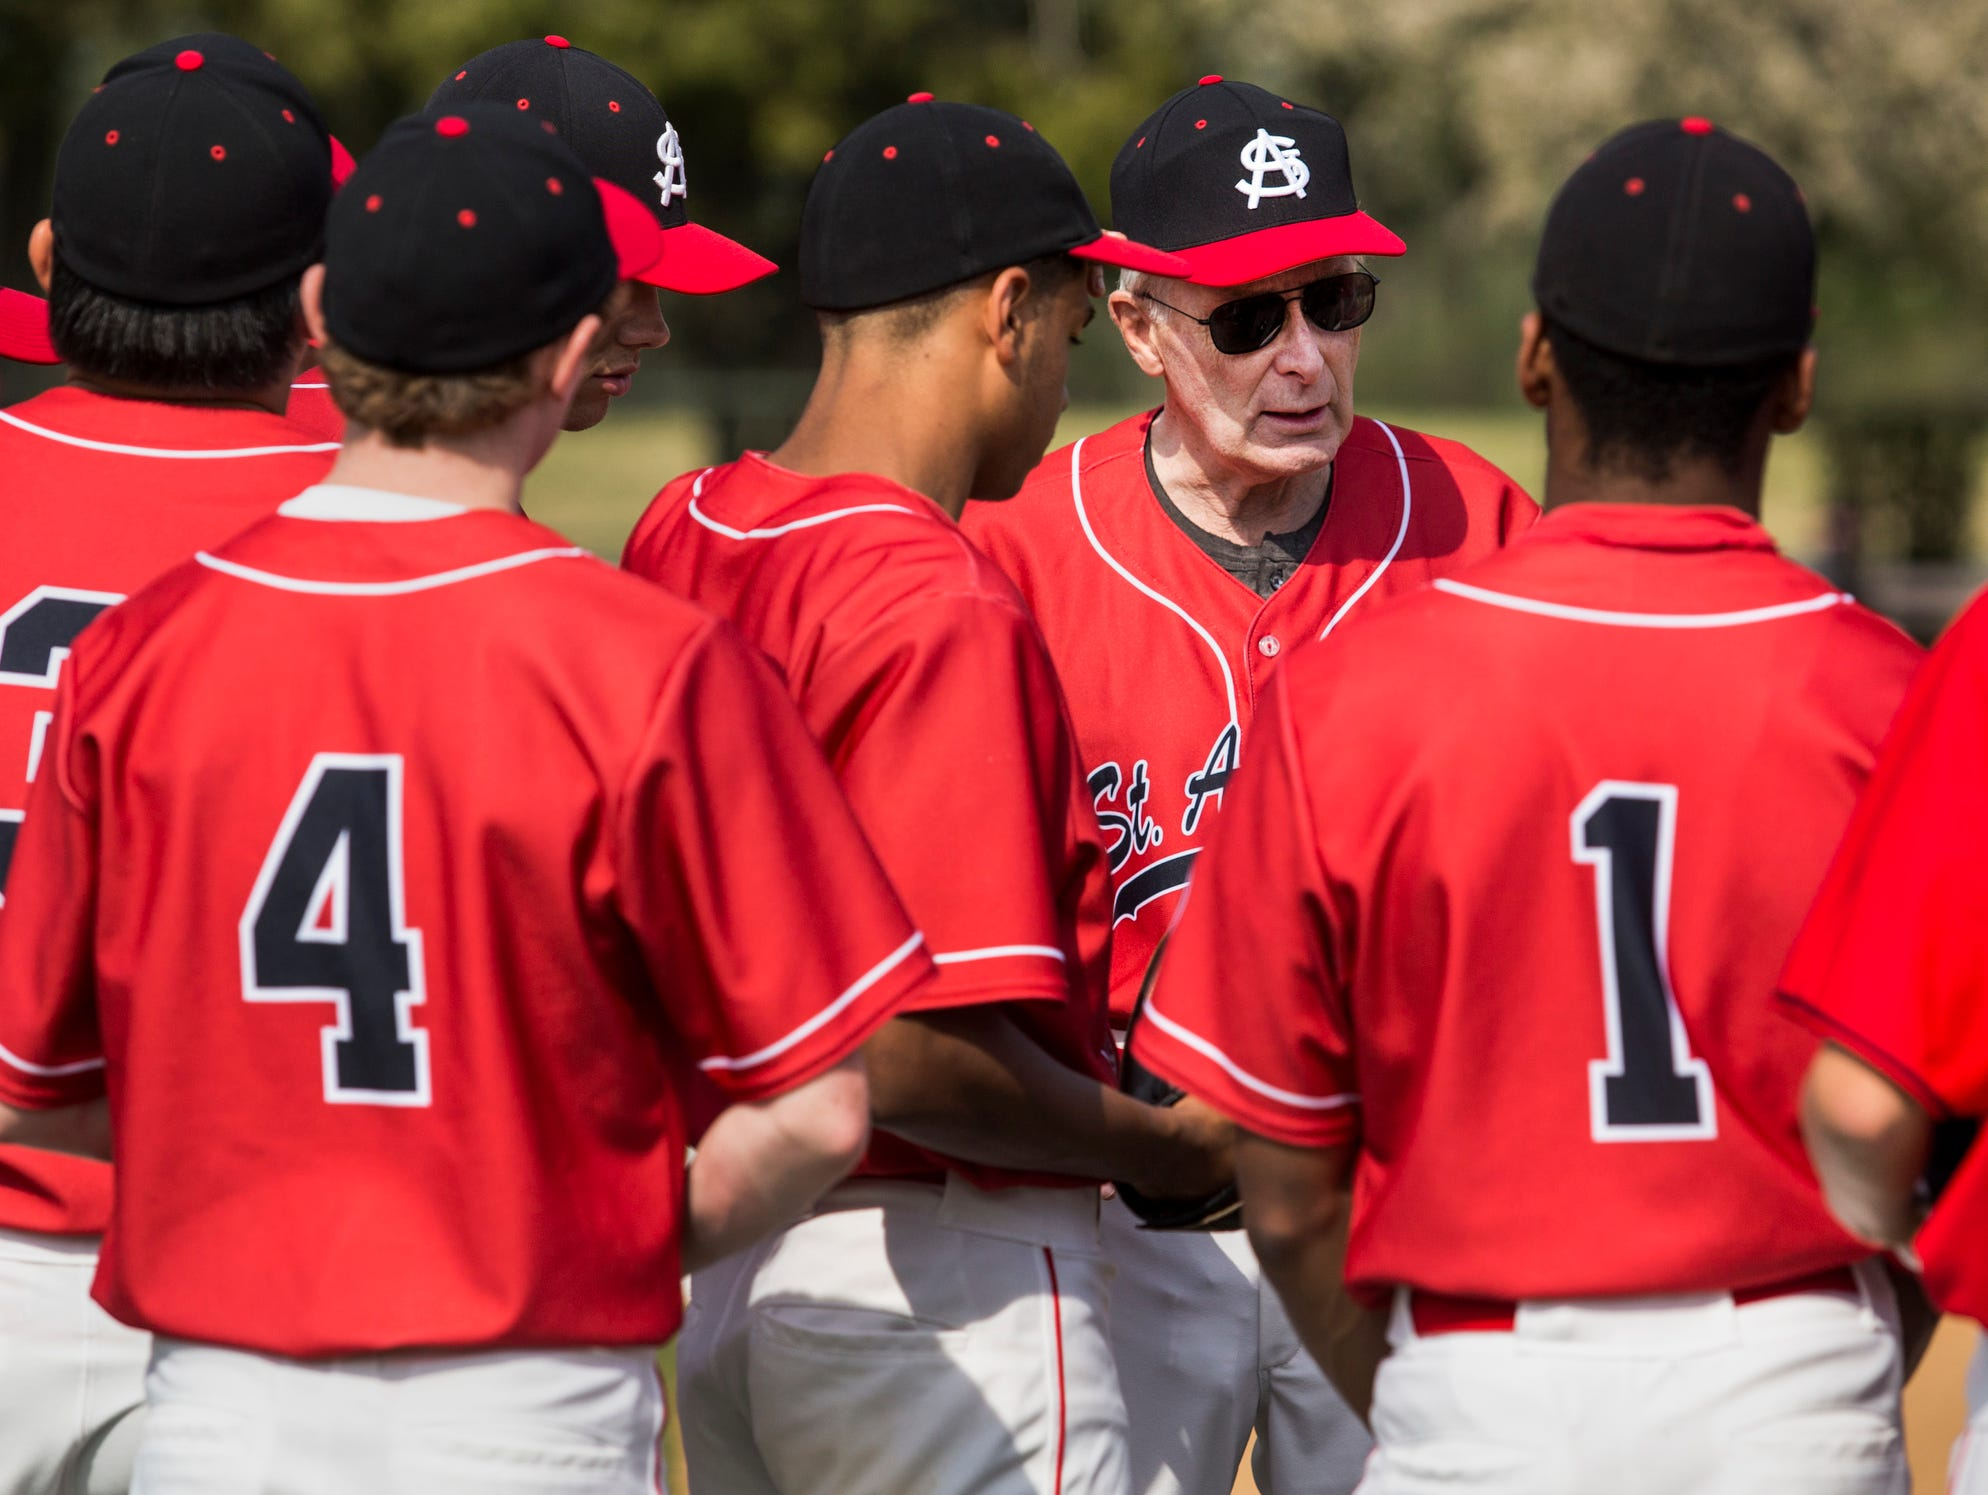 St. Andrew's head coach Bob Colburn talks with his players before the start of a game at St. Andrew's School in Middletown on Thursday afternoon.